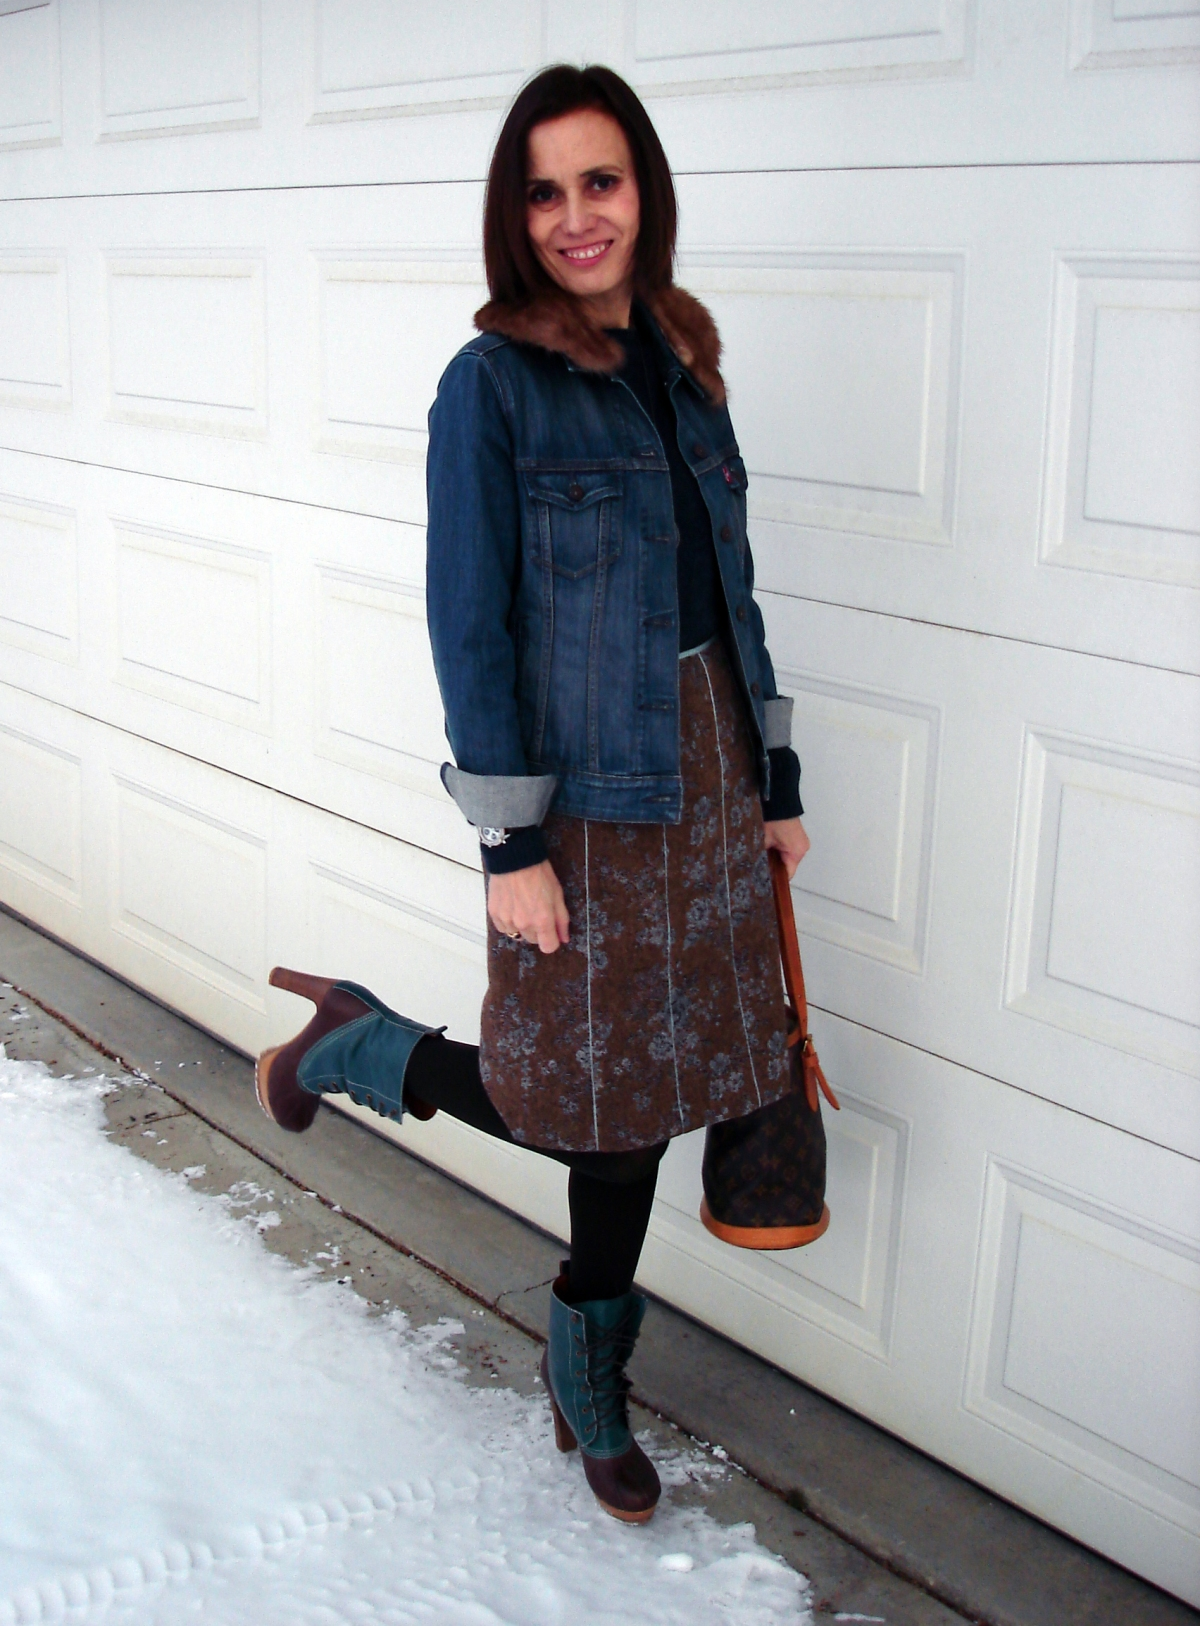 fashion over 40 woman in tweed skirt and denim jacket